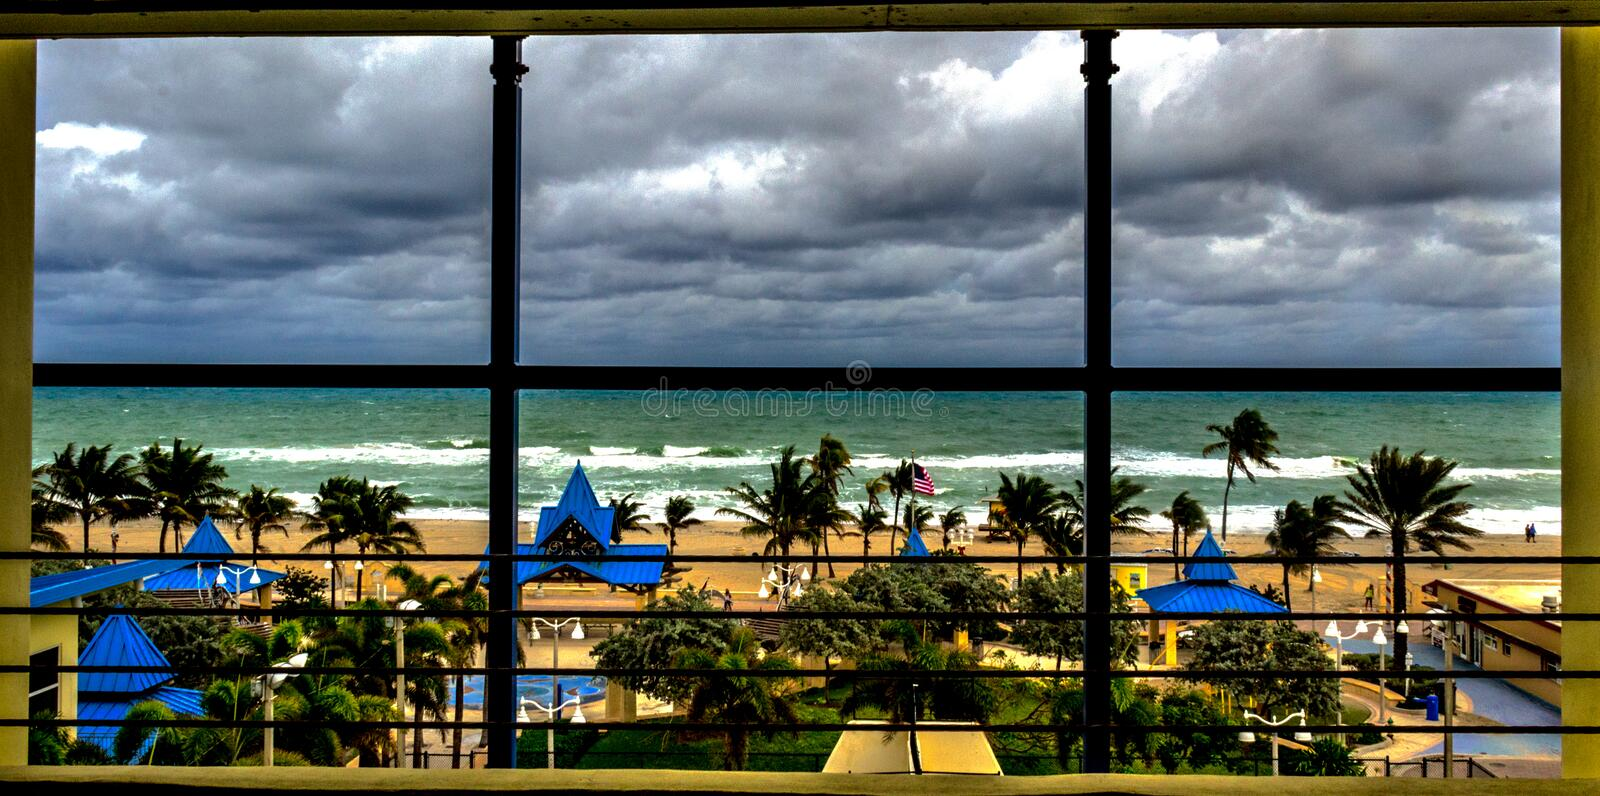 Stormy Hollywood Beach. This photo was taken from inside the parking garage looking out onto a stormy day at Hollywood Florida Beach royalty free stock photos